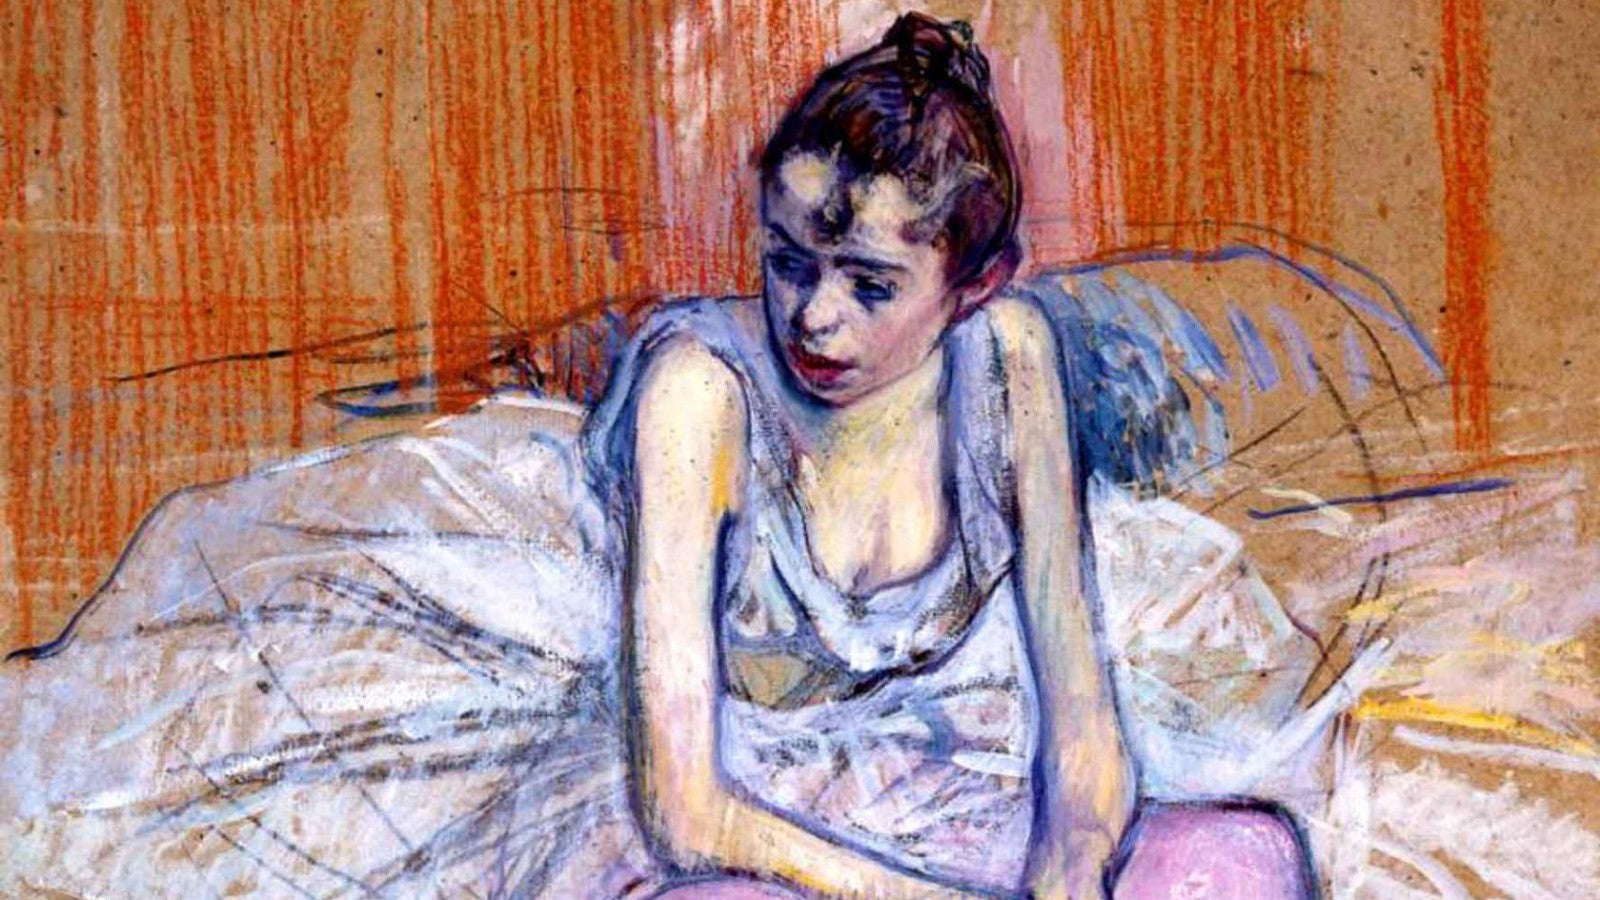 Seated Dancer in Pink Tights painting by Henri de Toulouse-Lautrec (1890)